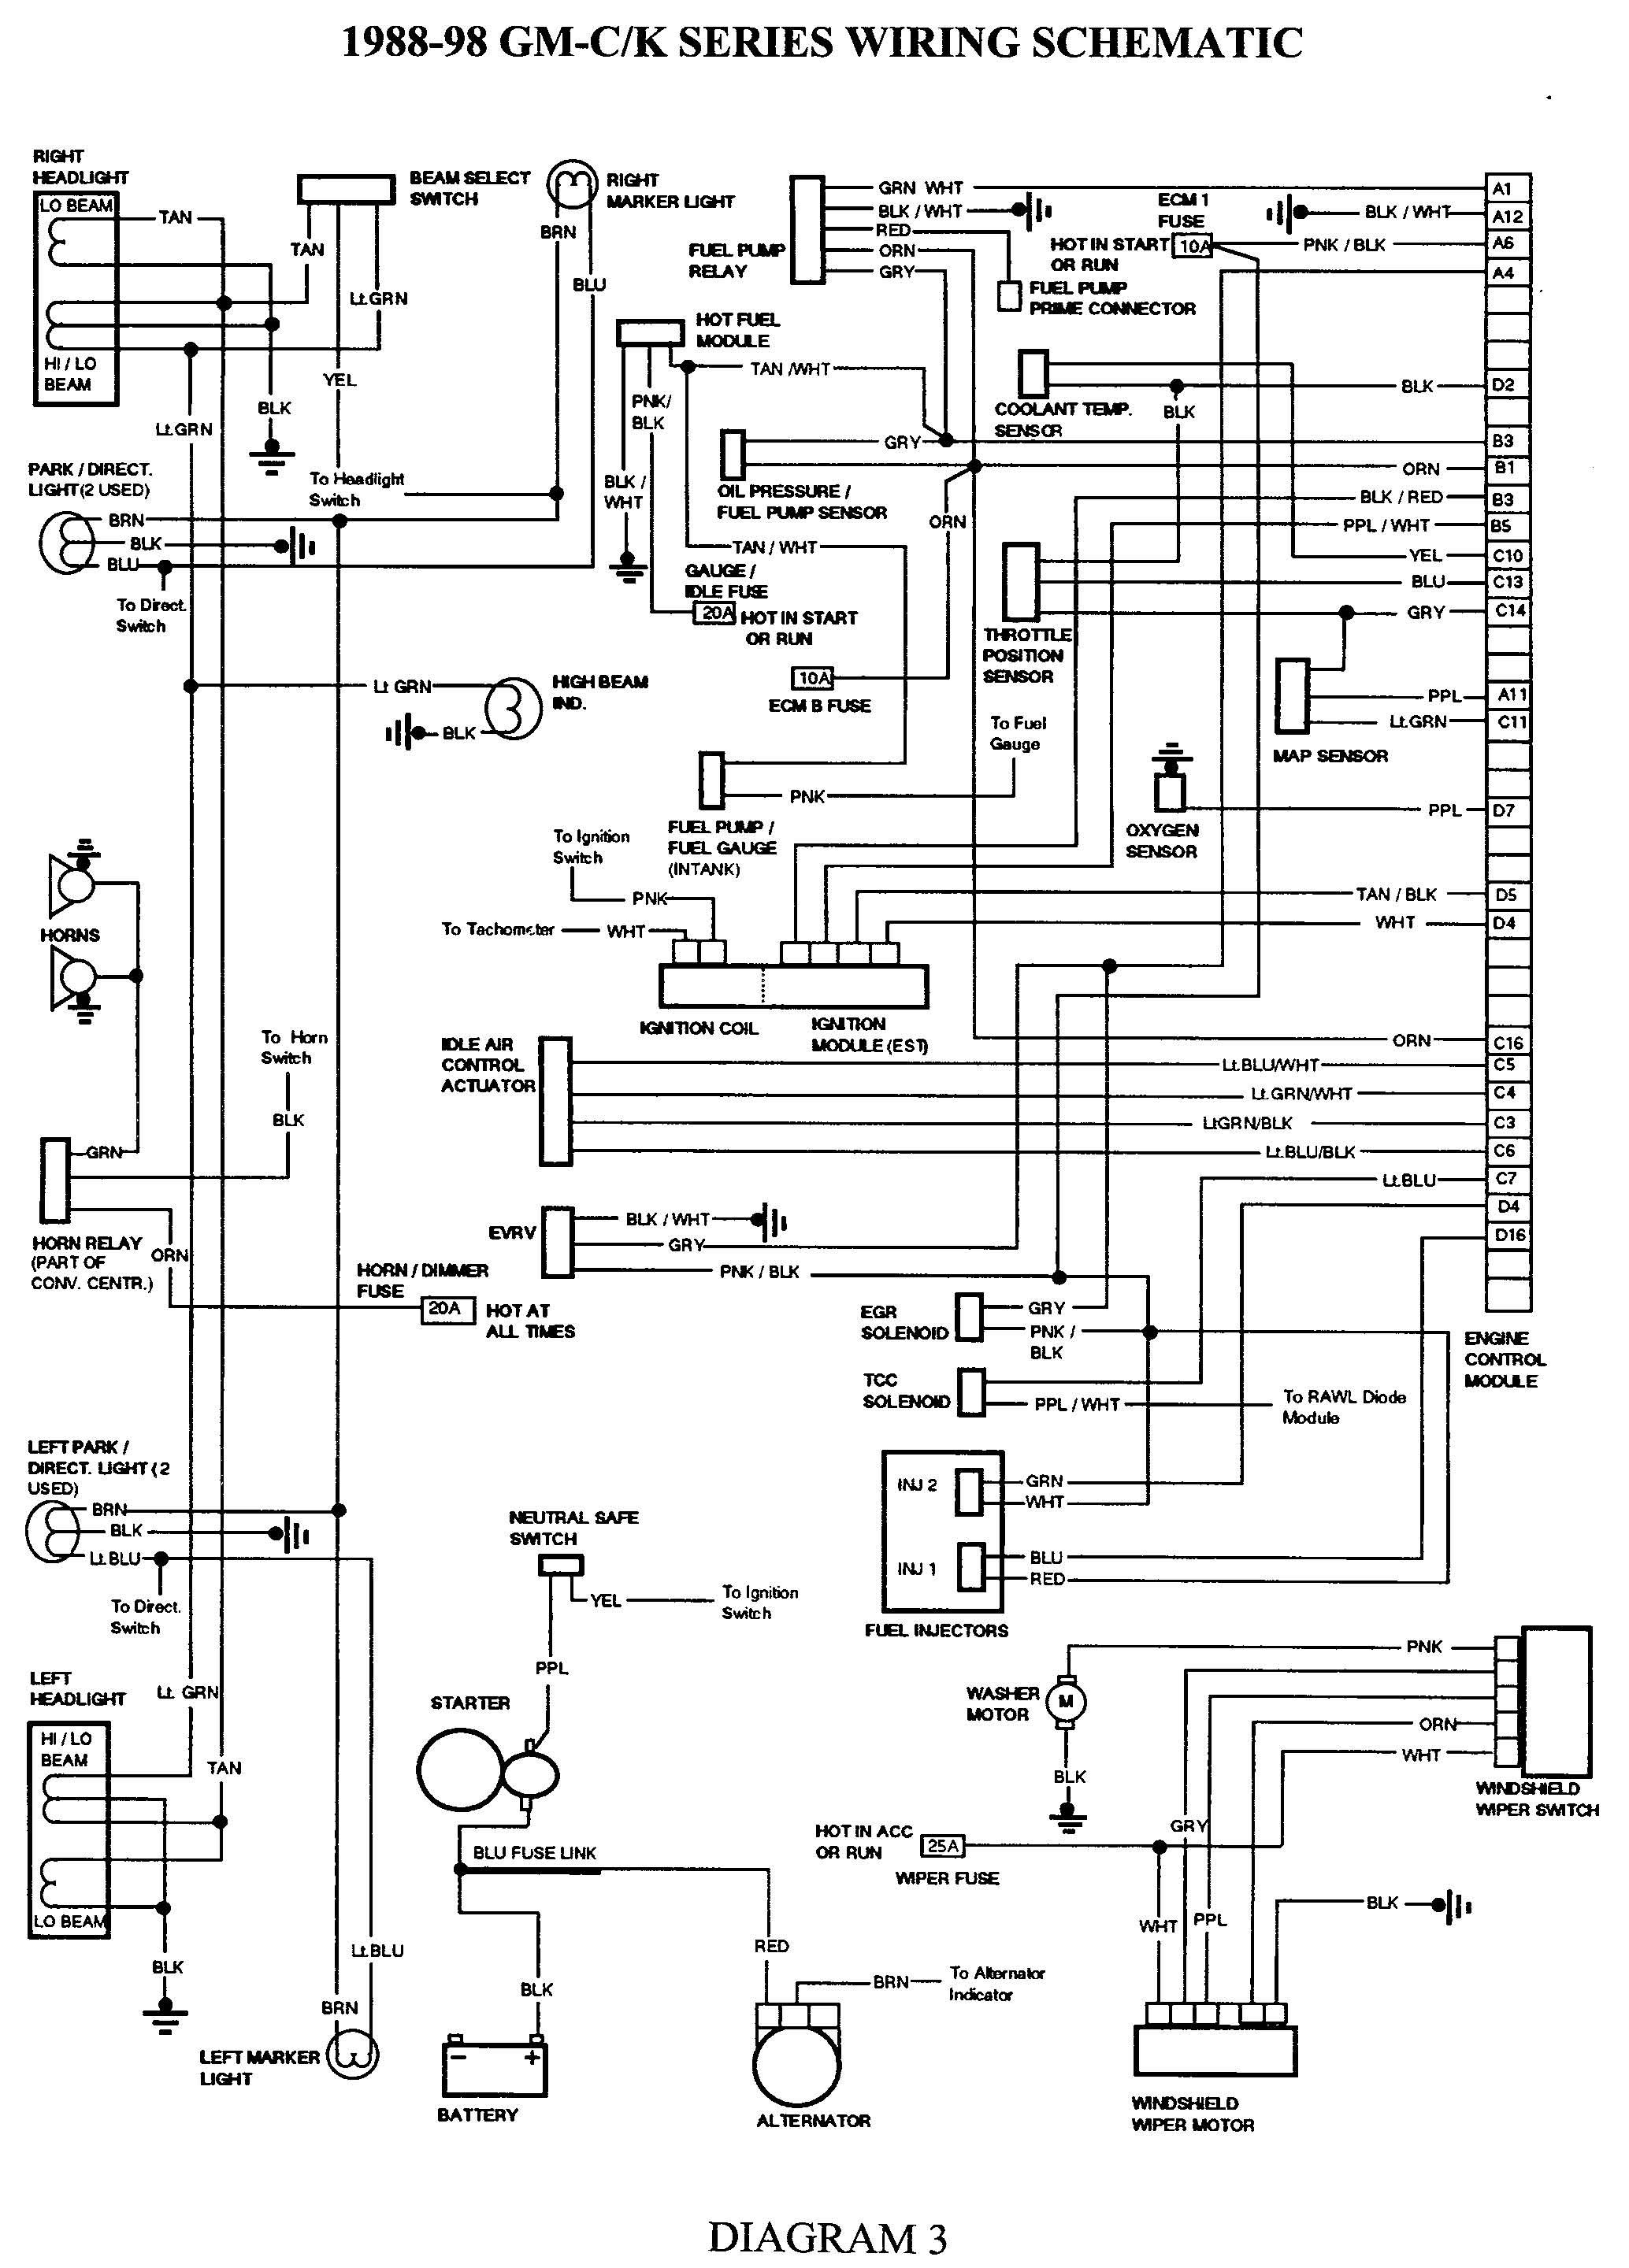 gmc truck wiring diagram detailed schematics diagram rh keyplusrubber com  2000 GMC Radio Wiring Diagram GM Radio Wiring Harness Diagram